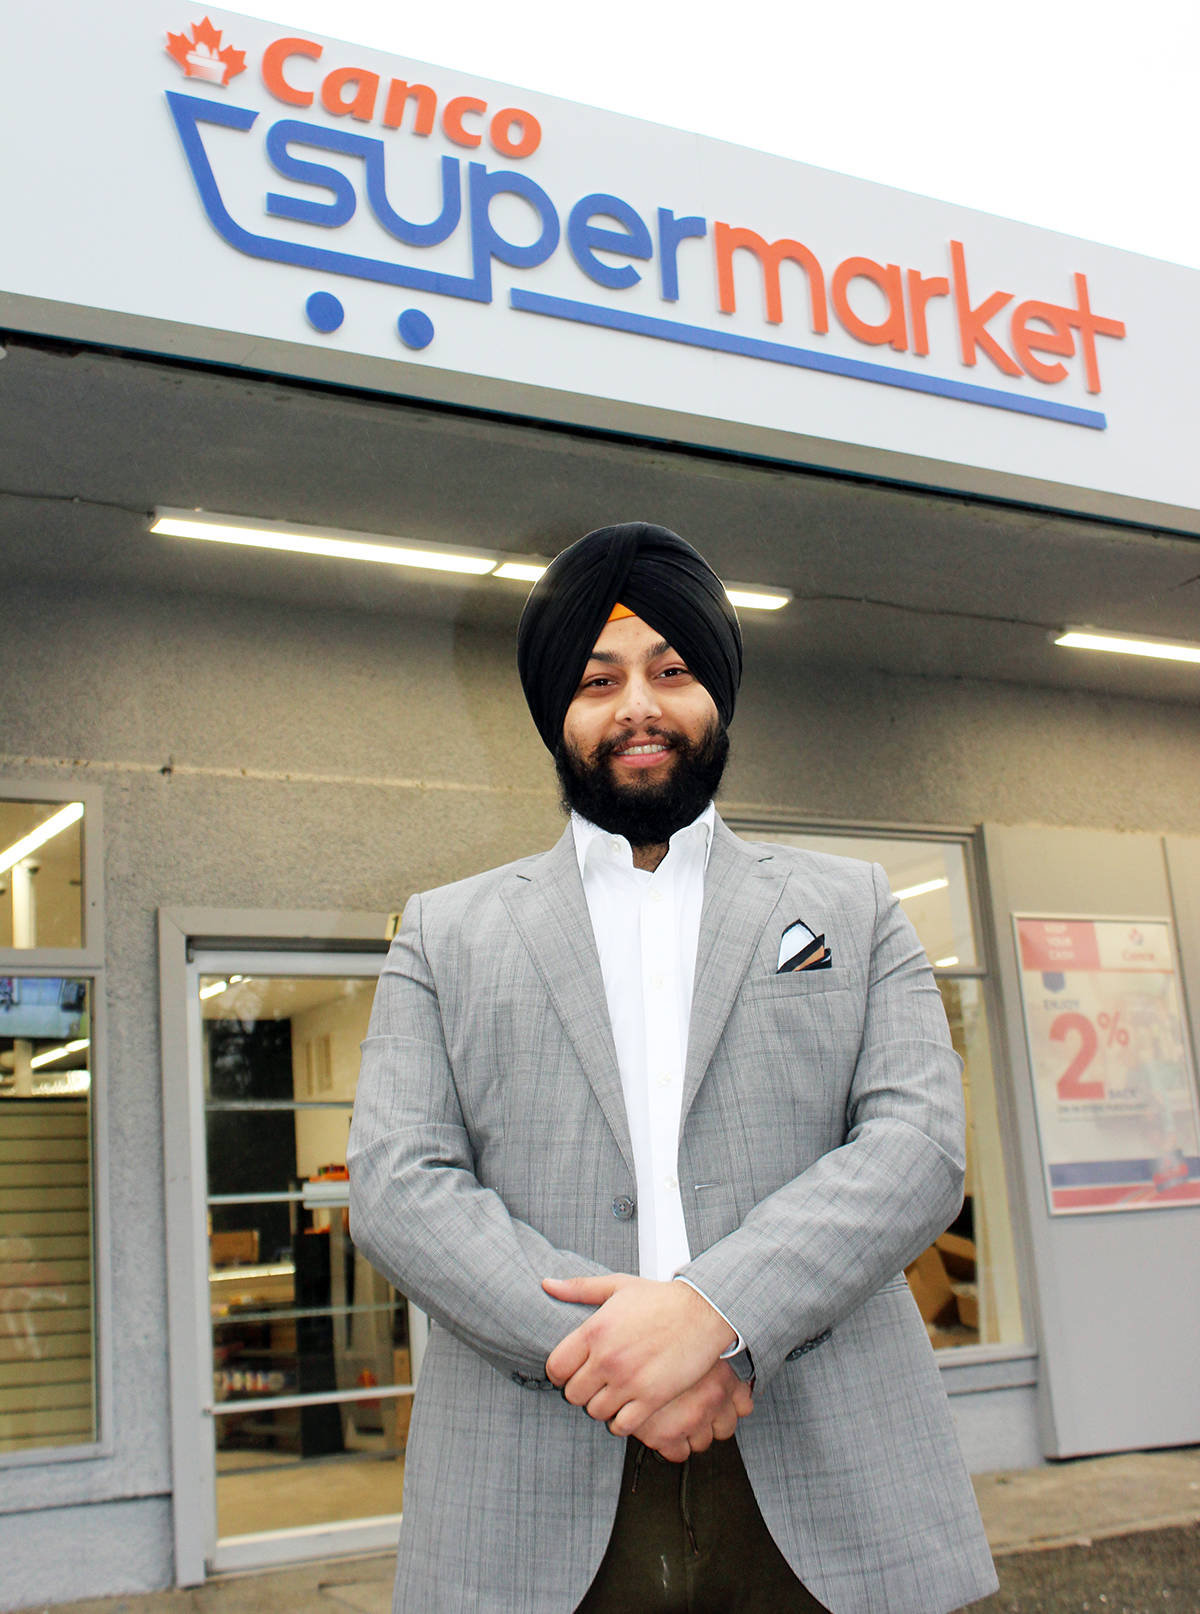 Friday was opening day for Drisht Preet (DP) Singh at Saltair's Canco Supermarket. (Photo by Don Bodger)